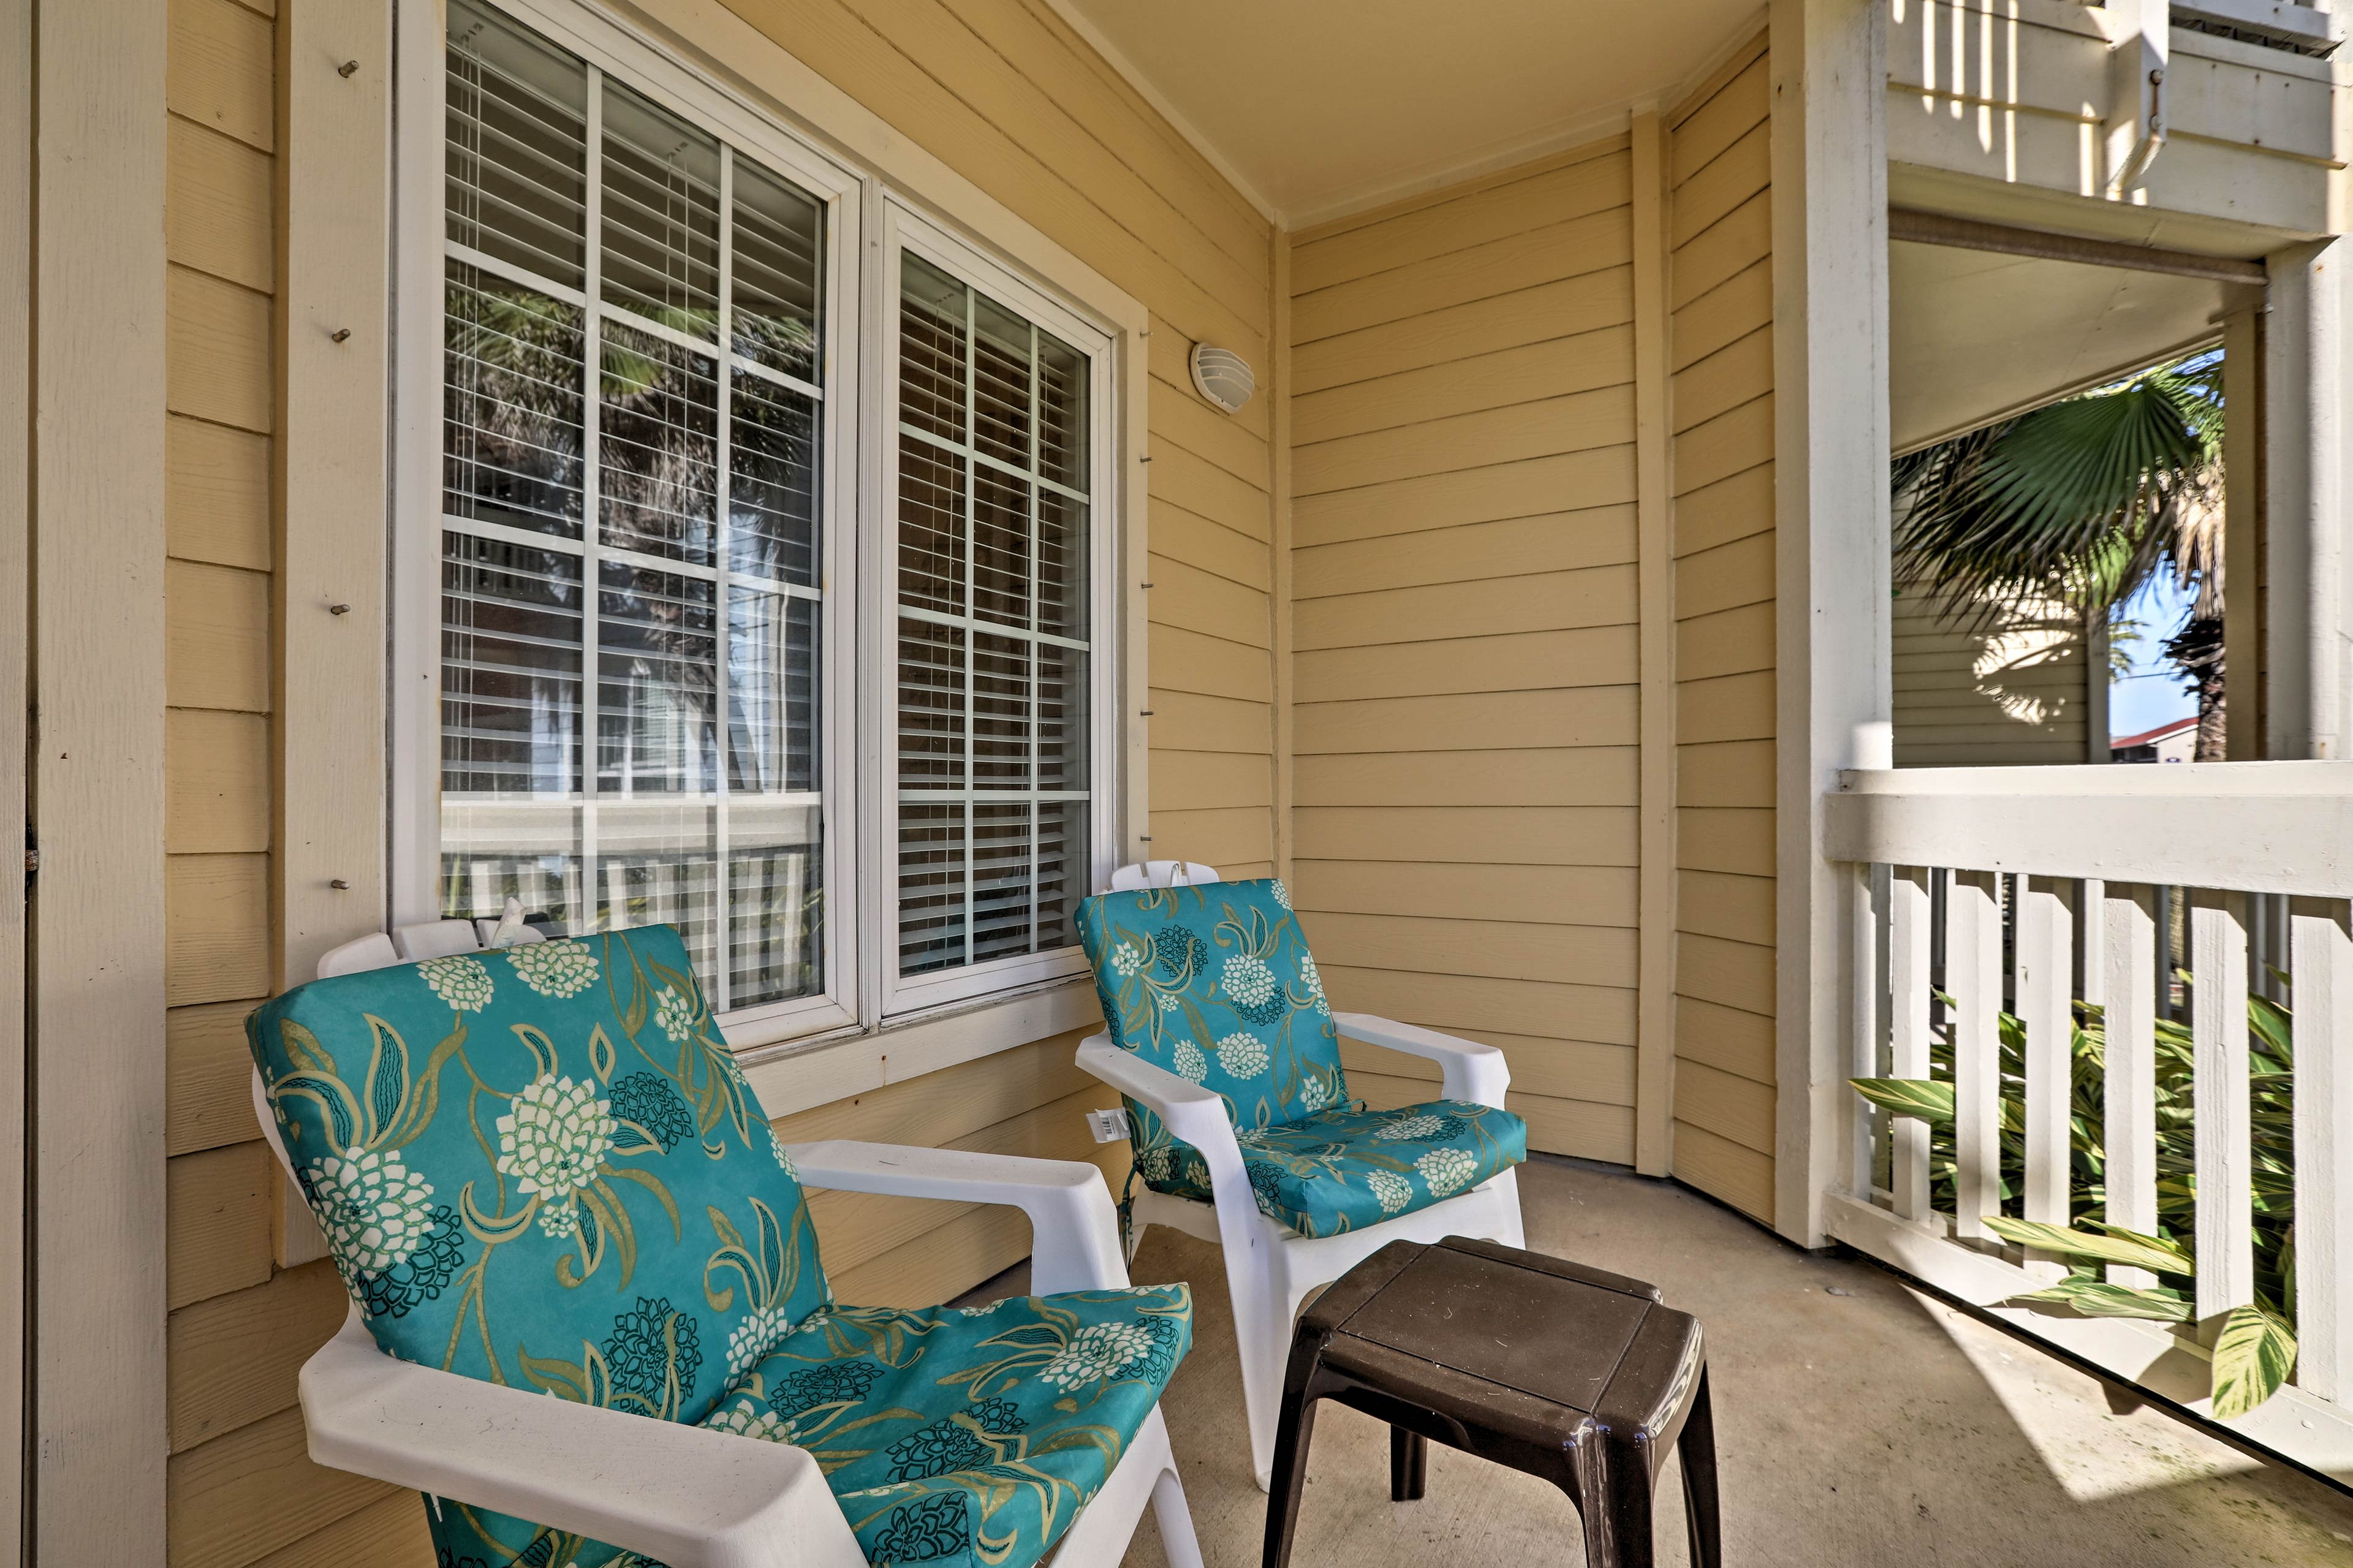 The private deck is the perfect space for a morning cup of coffee.